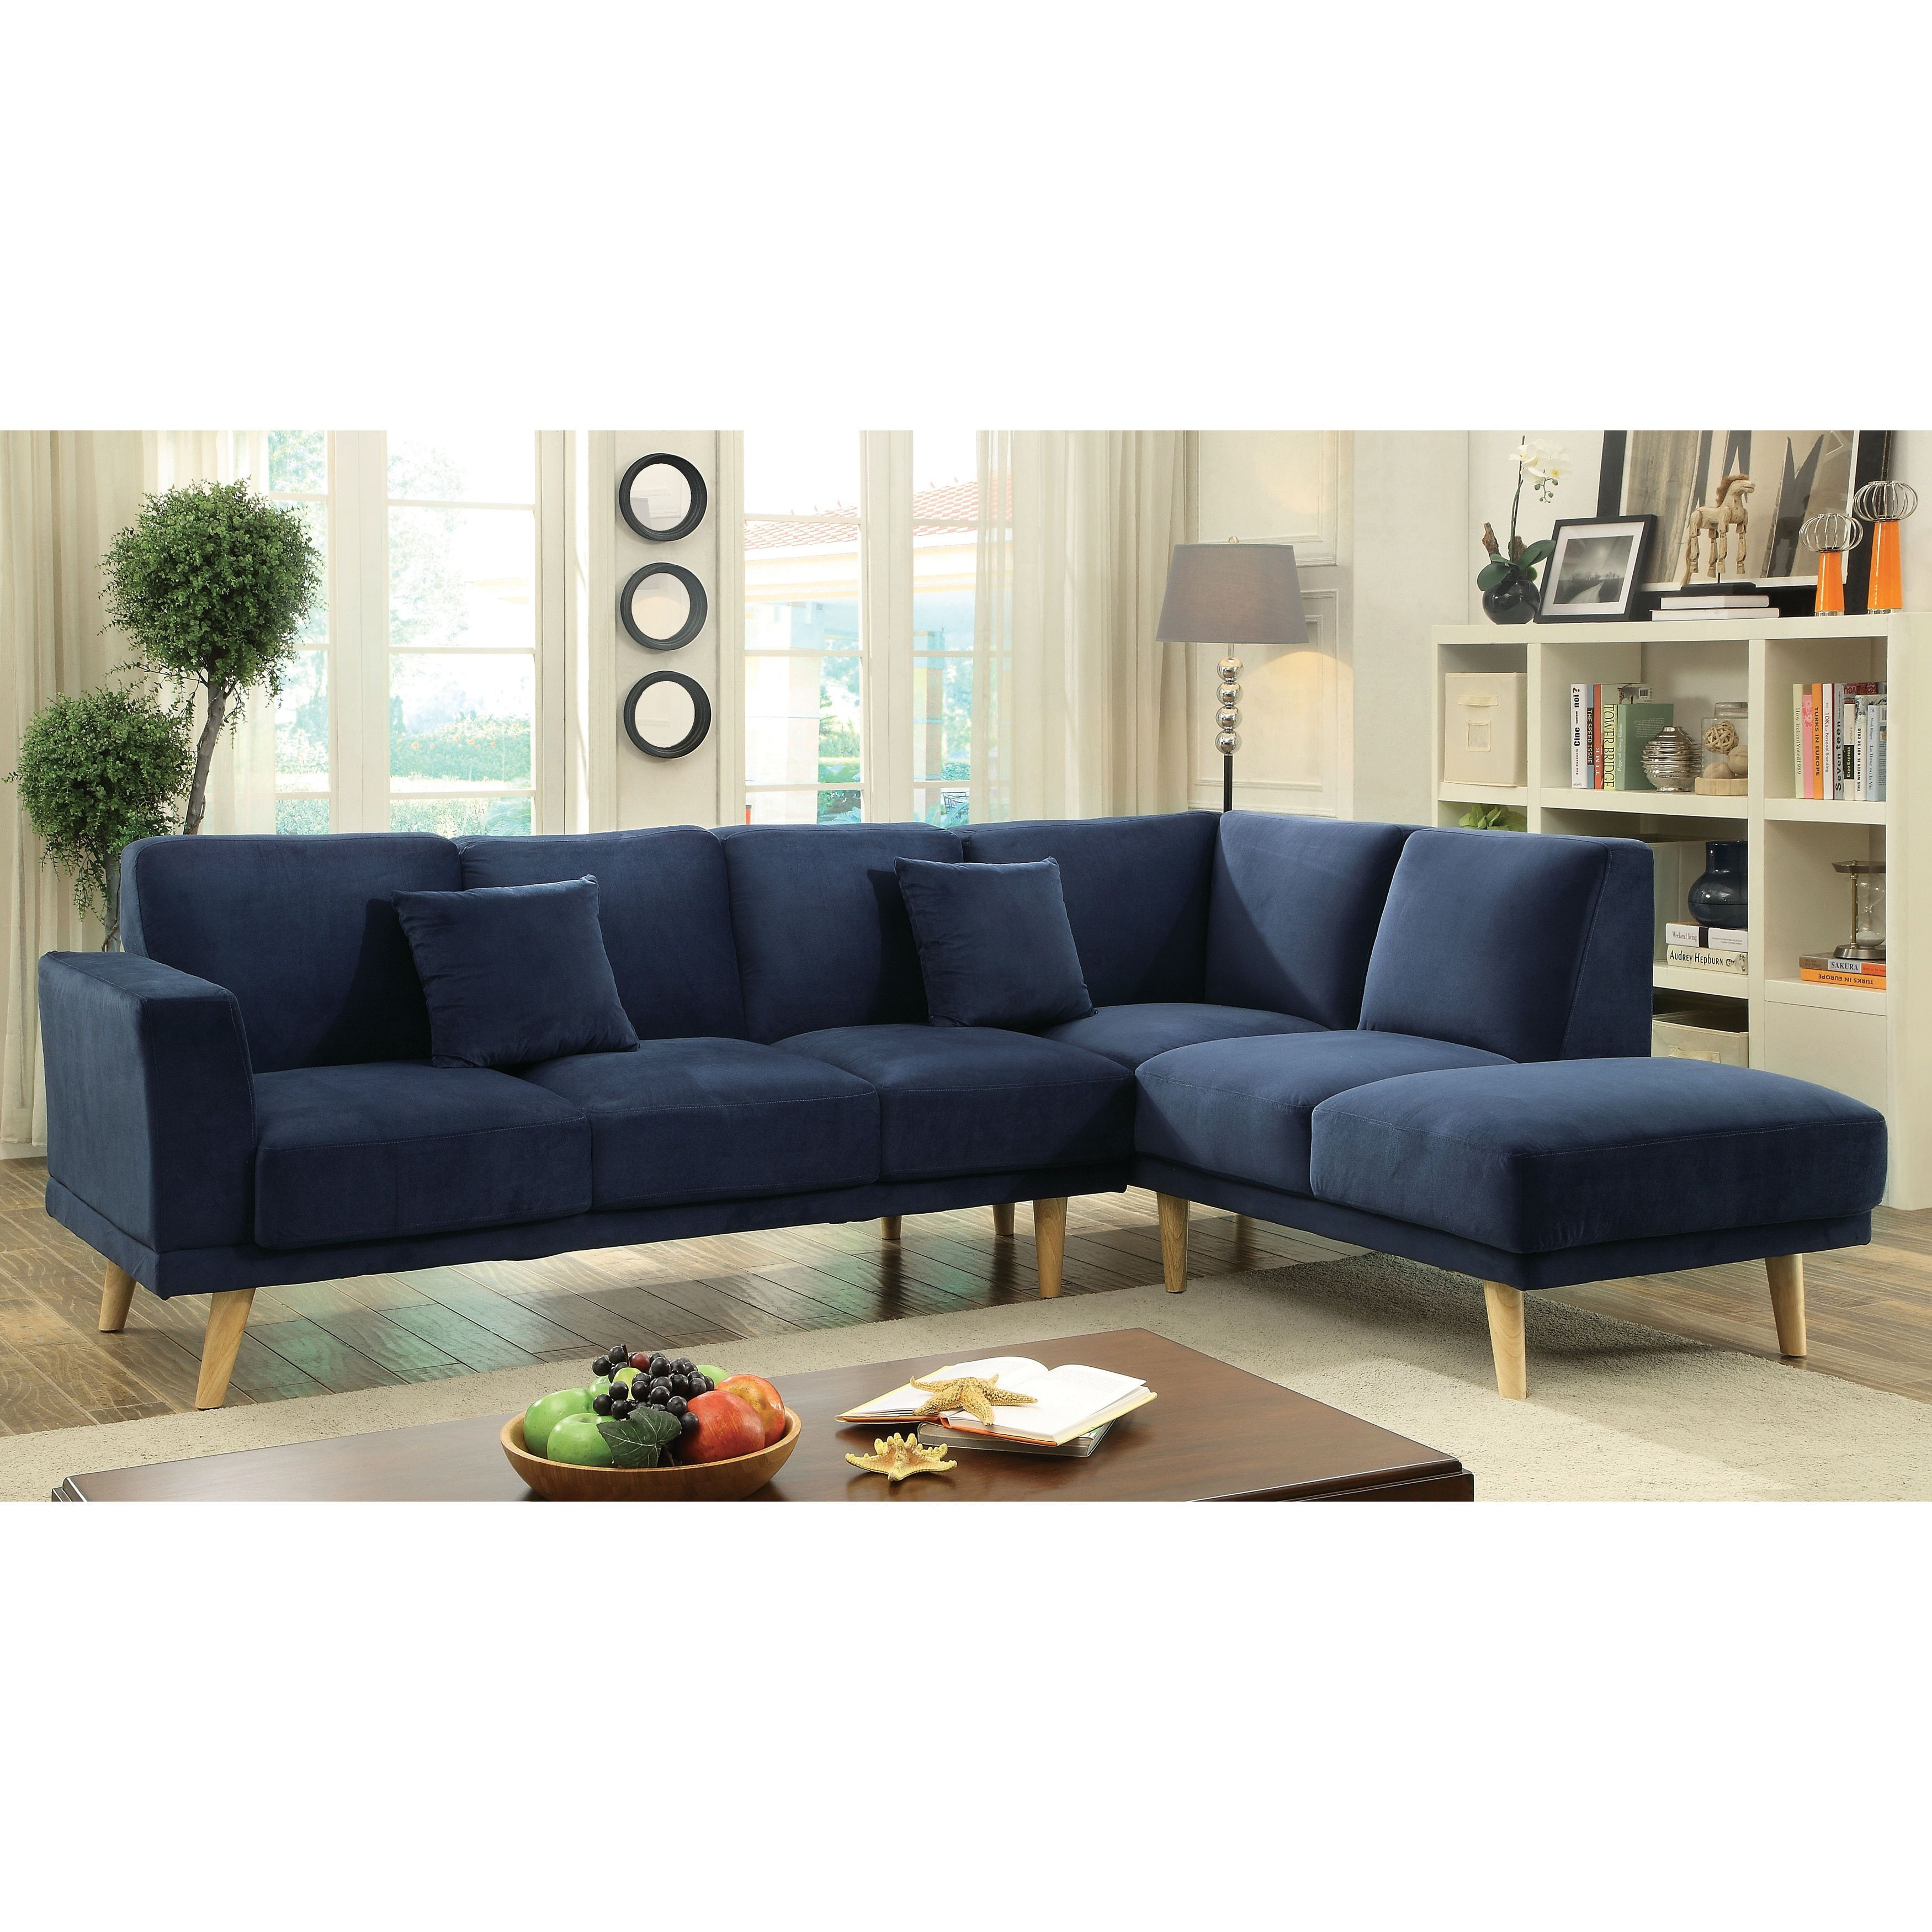 Furniture Of America Rama Mid Century Modern Flannelette L Shaped Sectional Navy Blue Fabric